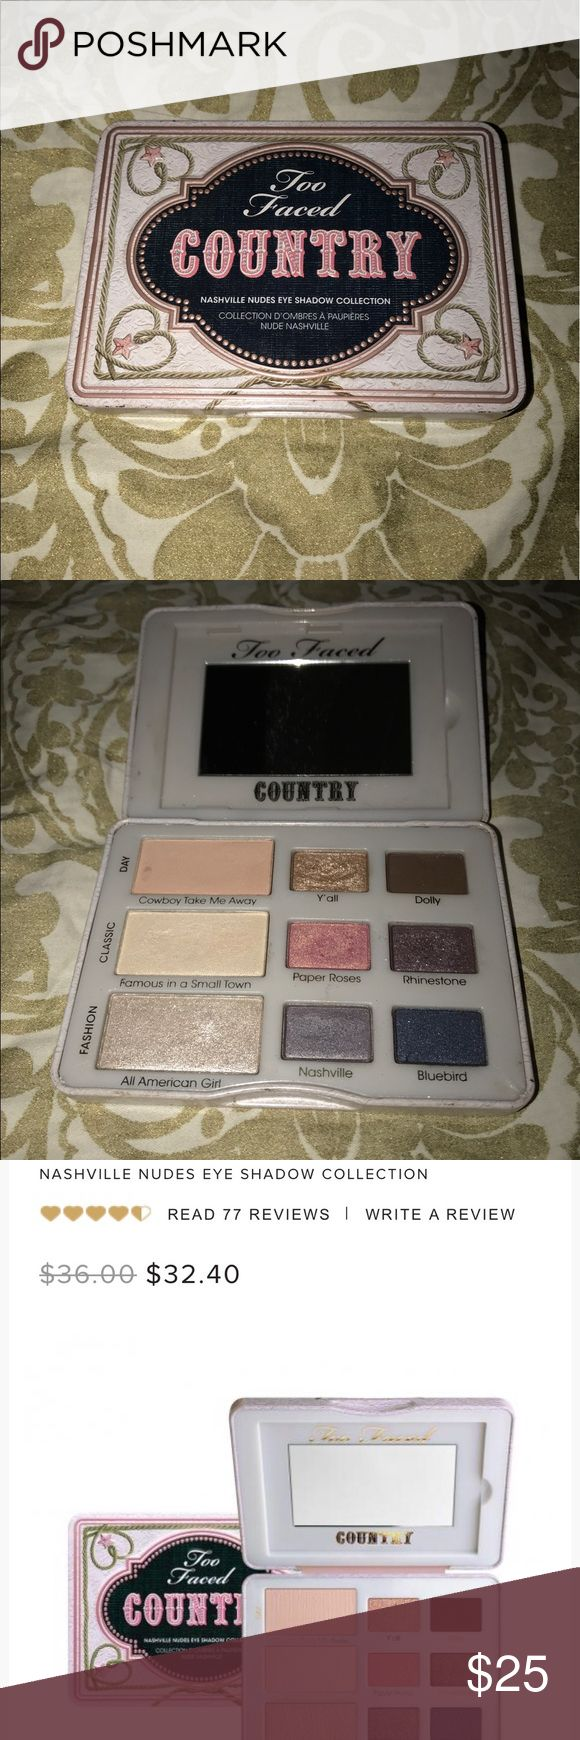 Too Faced Country Palette Gently used! Too Faced Makeup Eyeshadow